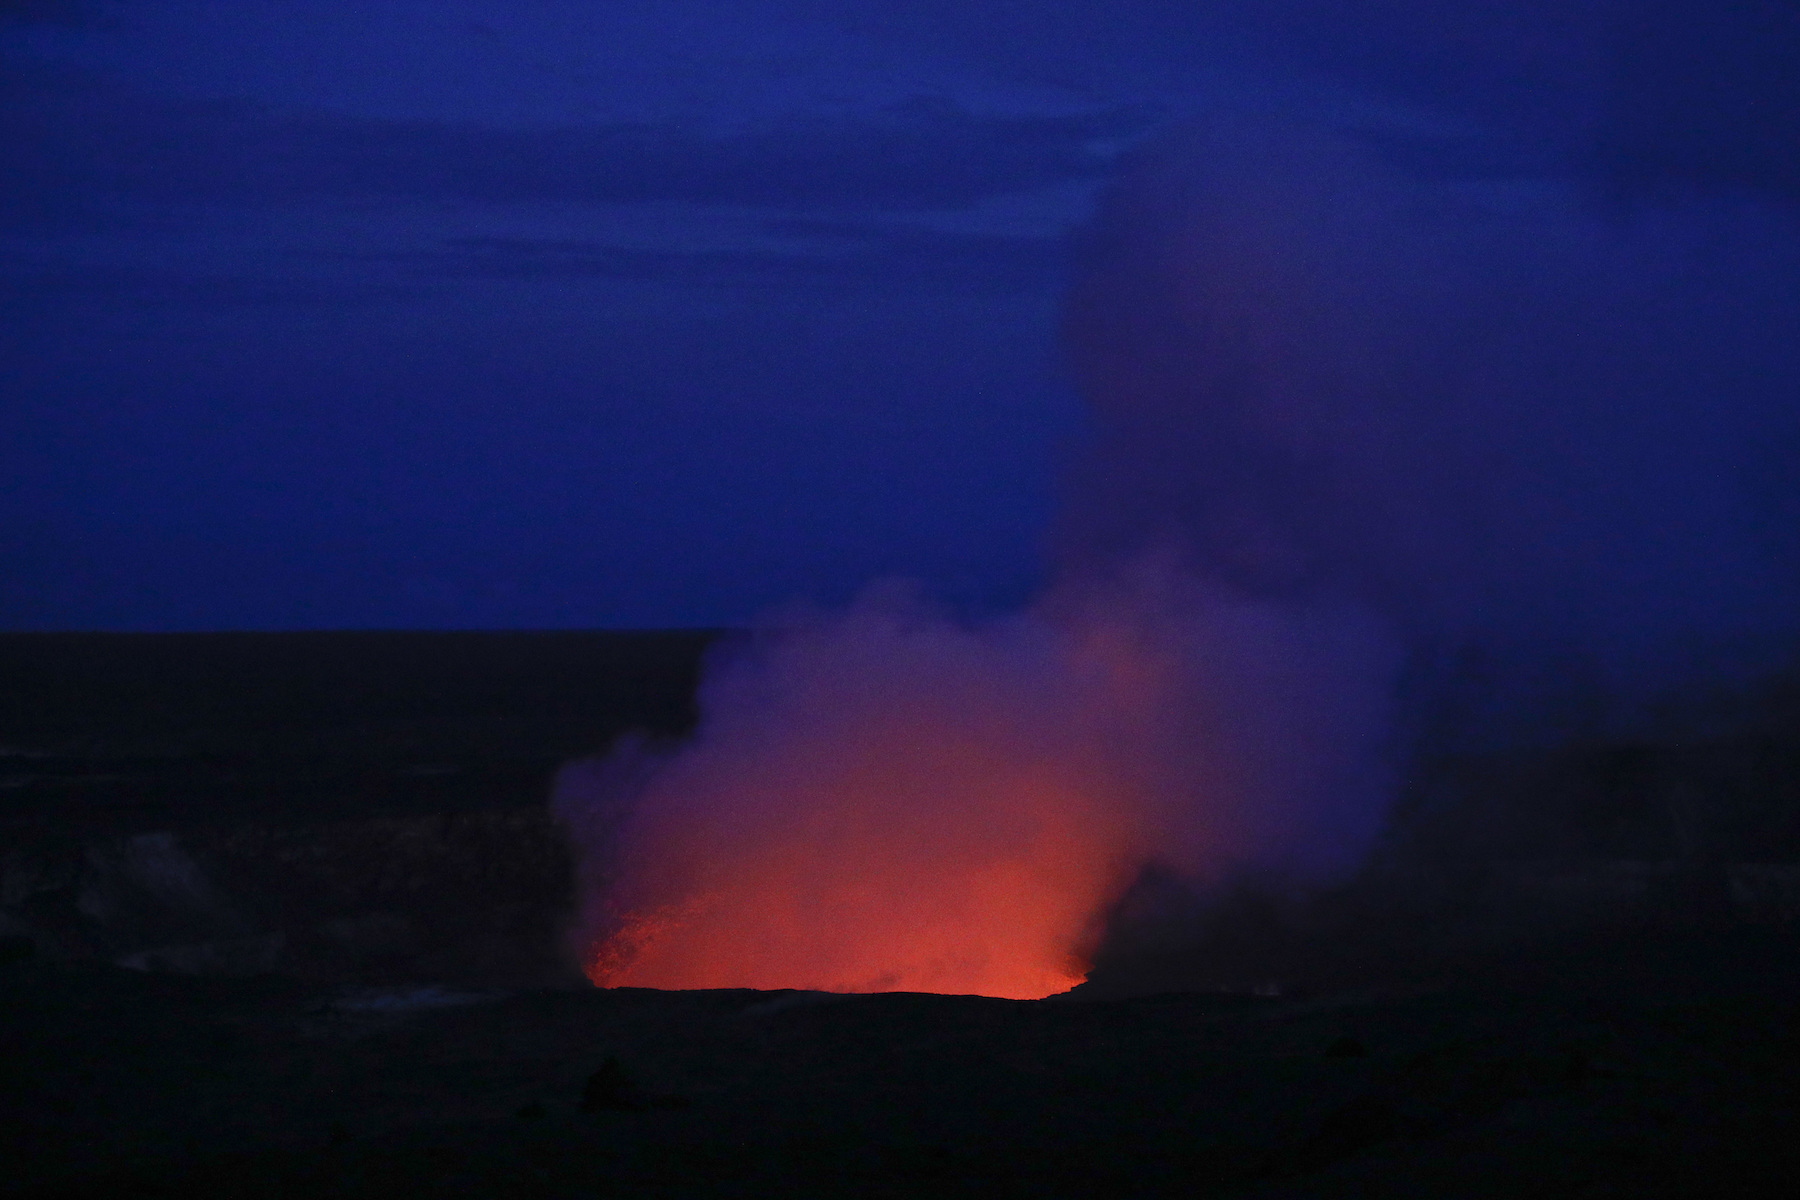 <div class='meta'><div class='origin-logo' data-origin='AP'></div><span class='caption-text' data-credit='AP Photo/Jae C. Hong'>Kilauea's summit crater glows red in Volcanoes National Park, Hawaii. Wednesday, May 9, 2018.</span></div>